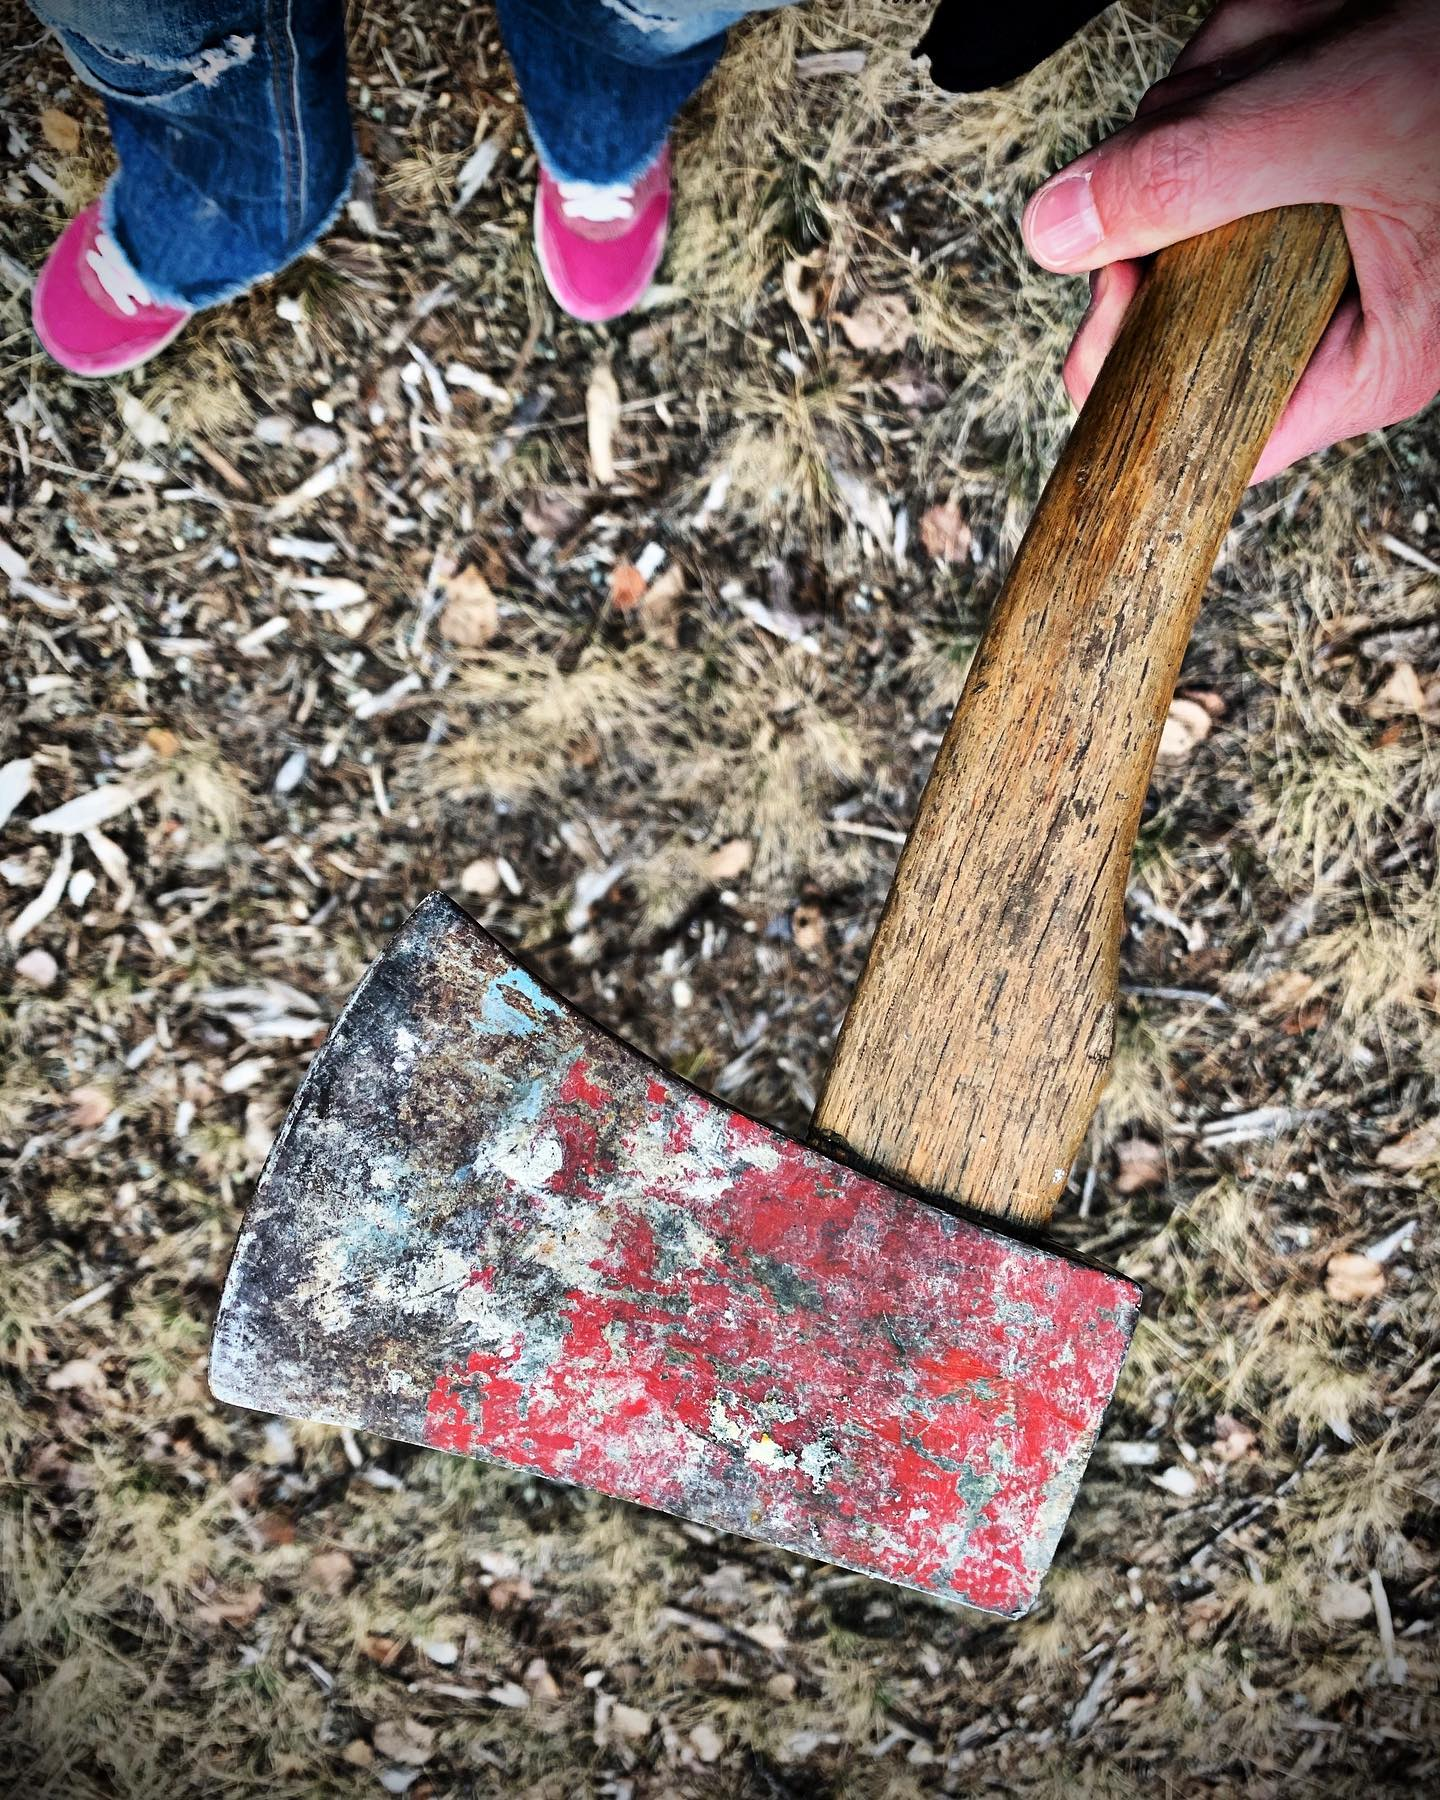 Home builder little house on the prairie style...or just the ax my cousins left on the jobsite whitefish custom home builder